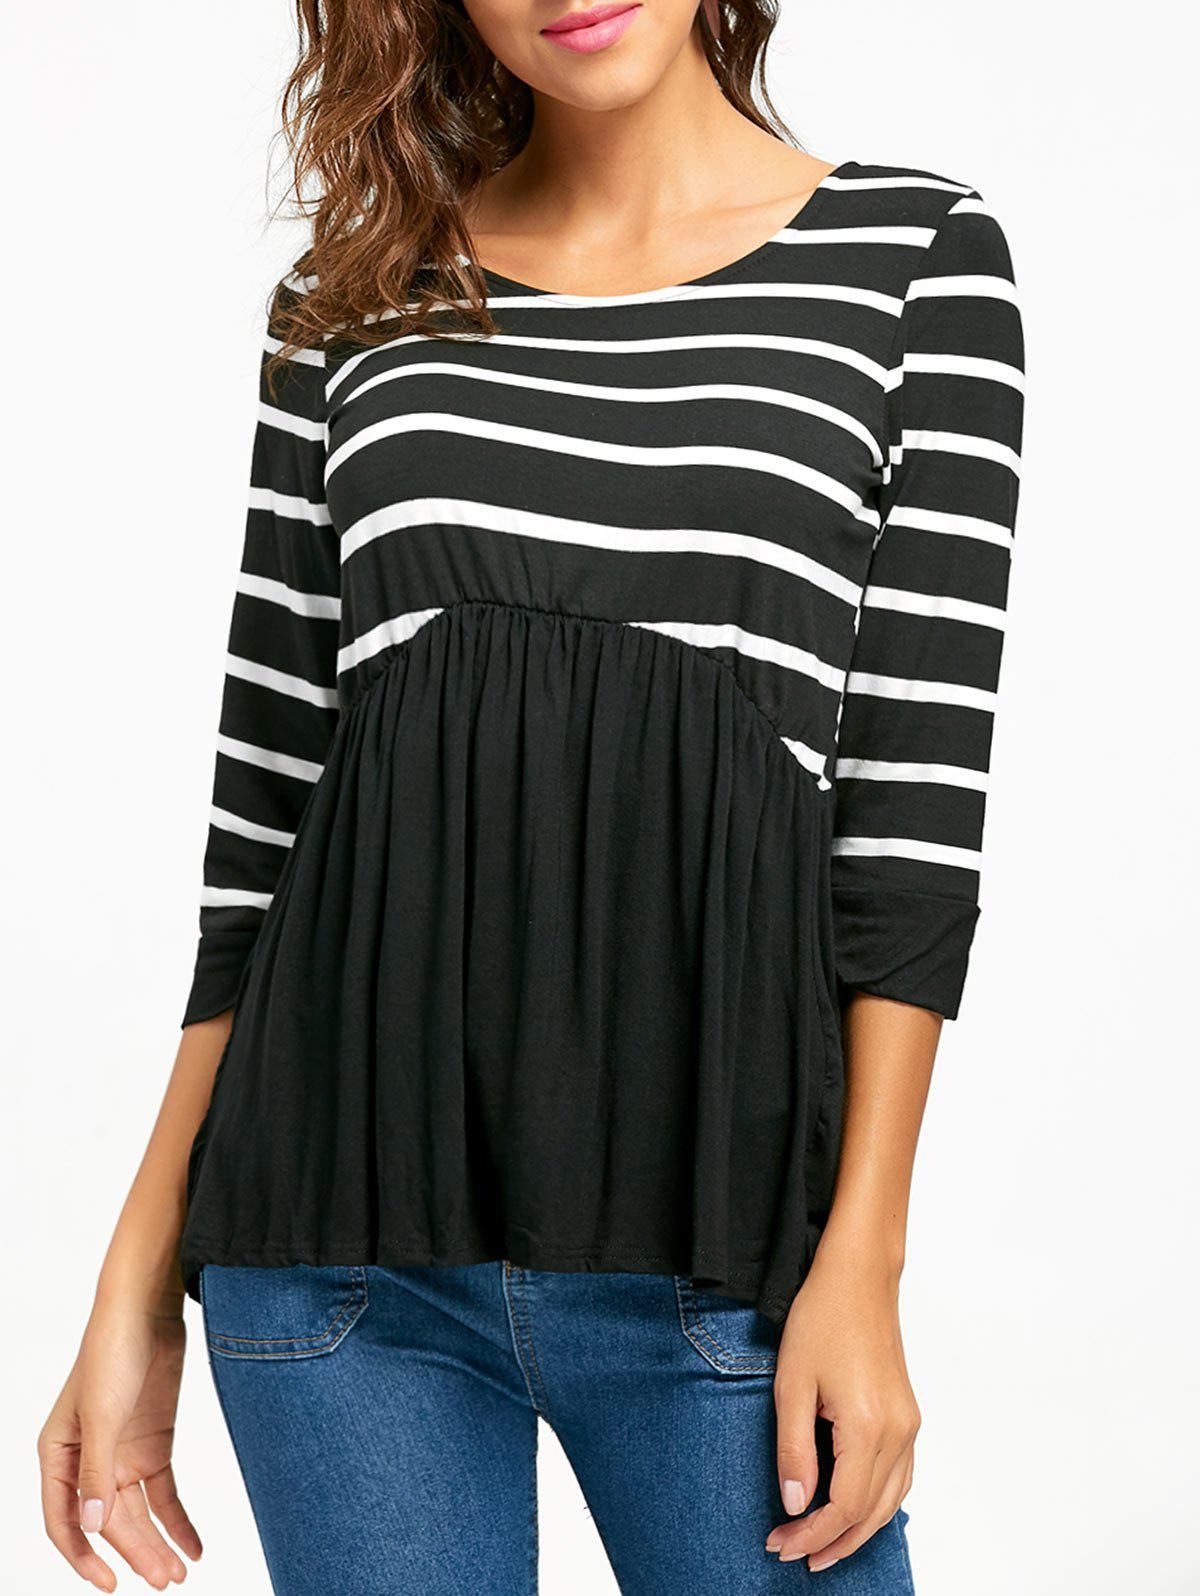 Striped Panel Casual Tunic Top - BLACK S